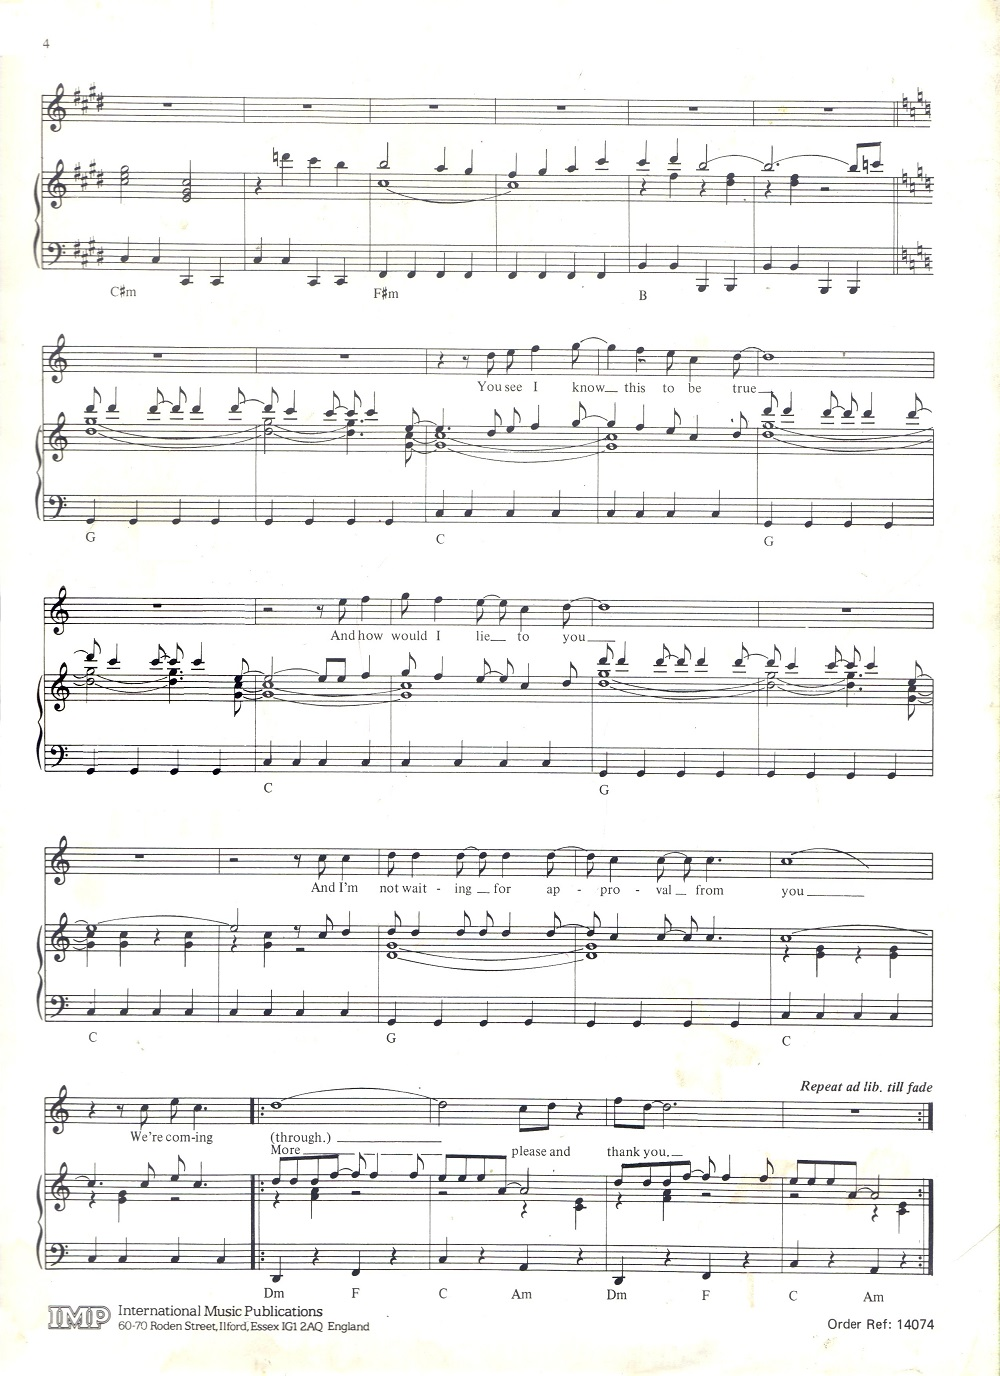 Celtic_Soul_Brothers_Sheet_Music_4.jpg